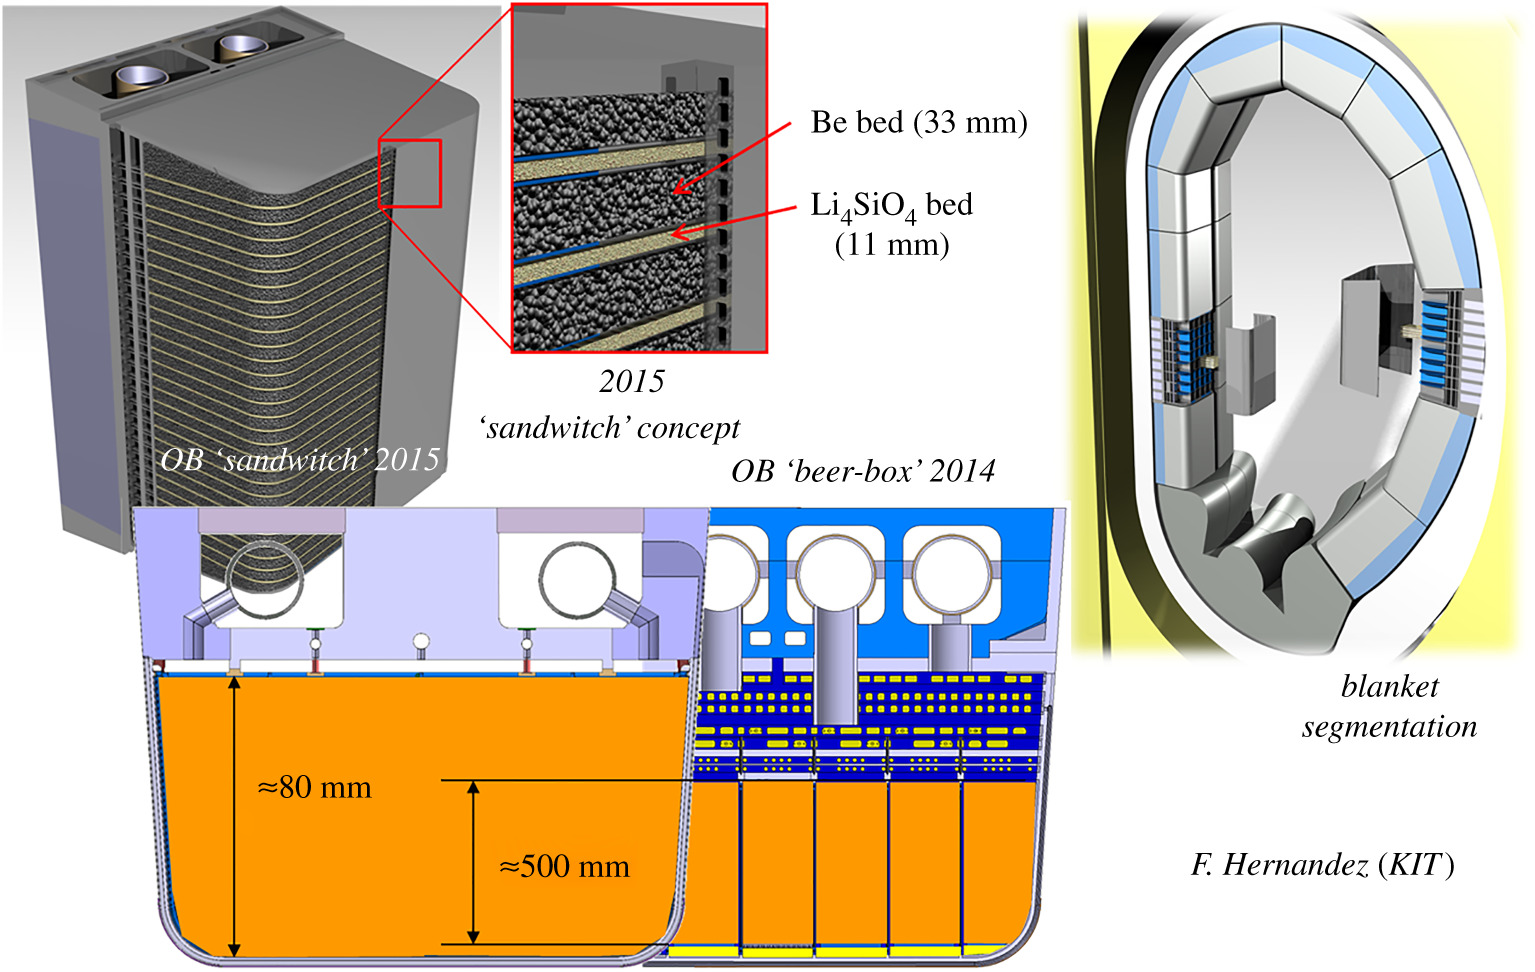 An economical viable tokamak fusion reactor based on the ITER